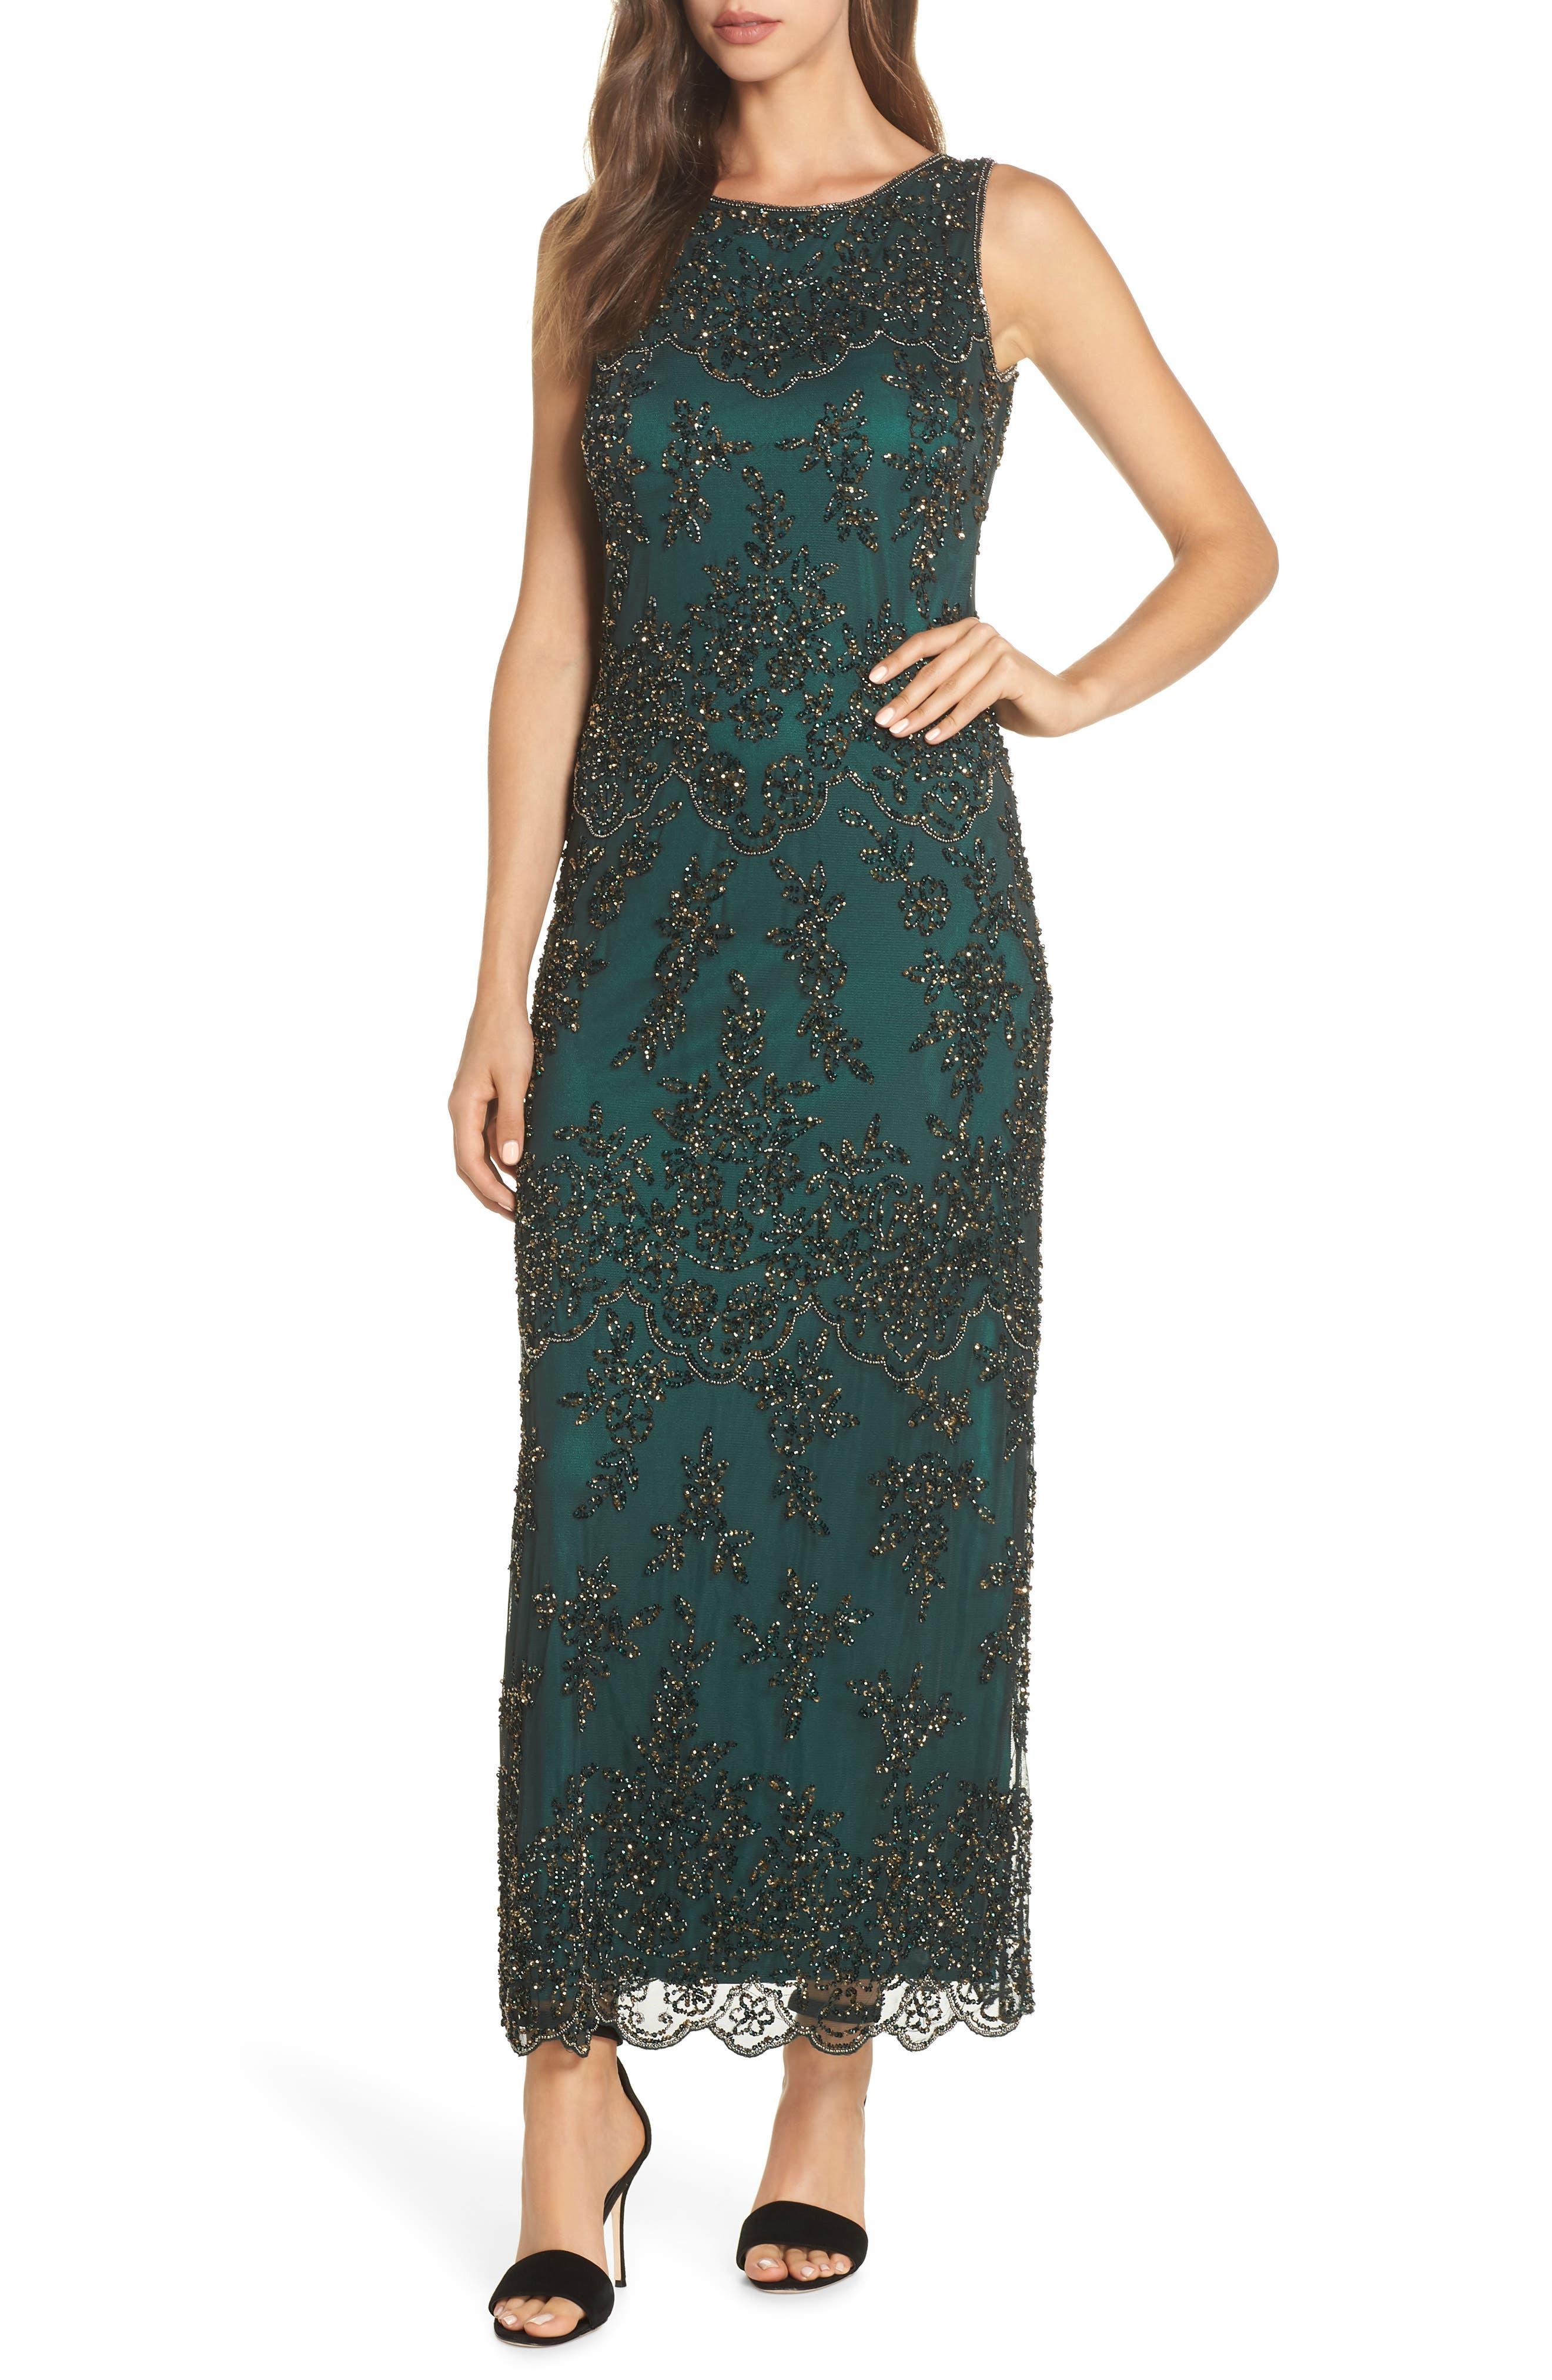 1920s Evening Dresses & Formal Gowns Womens Pisarro Nights Embellished Mesh Gown Size 4 - Green $218.00 AT vintagedancer.com